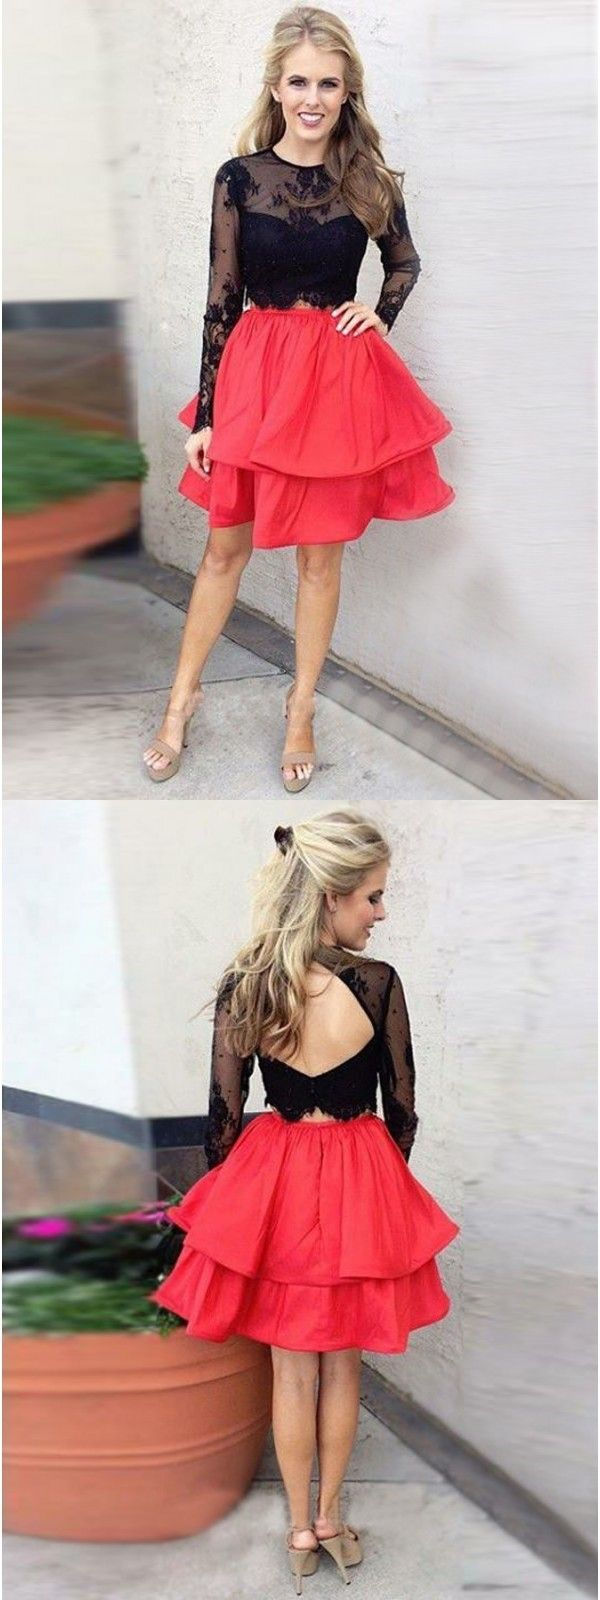 Top Black Homecoming Dress With Long Sleeves,  Short Red Prom Dress, Above-Knee Party Dress with Appliques